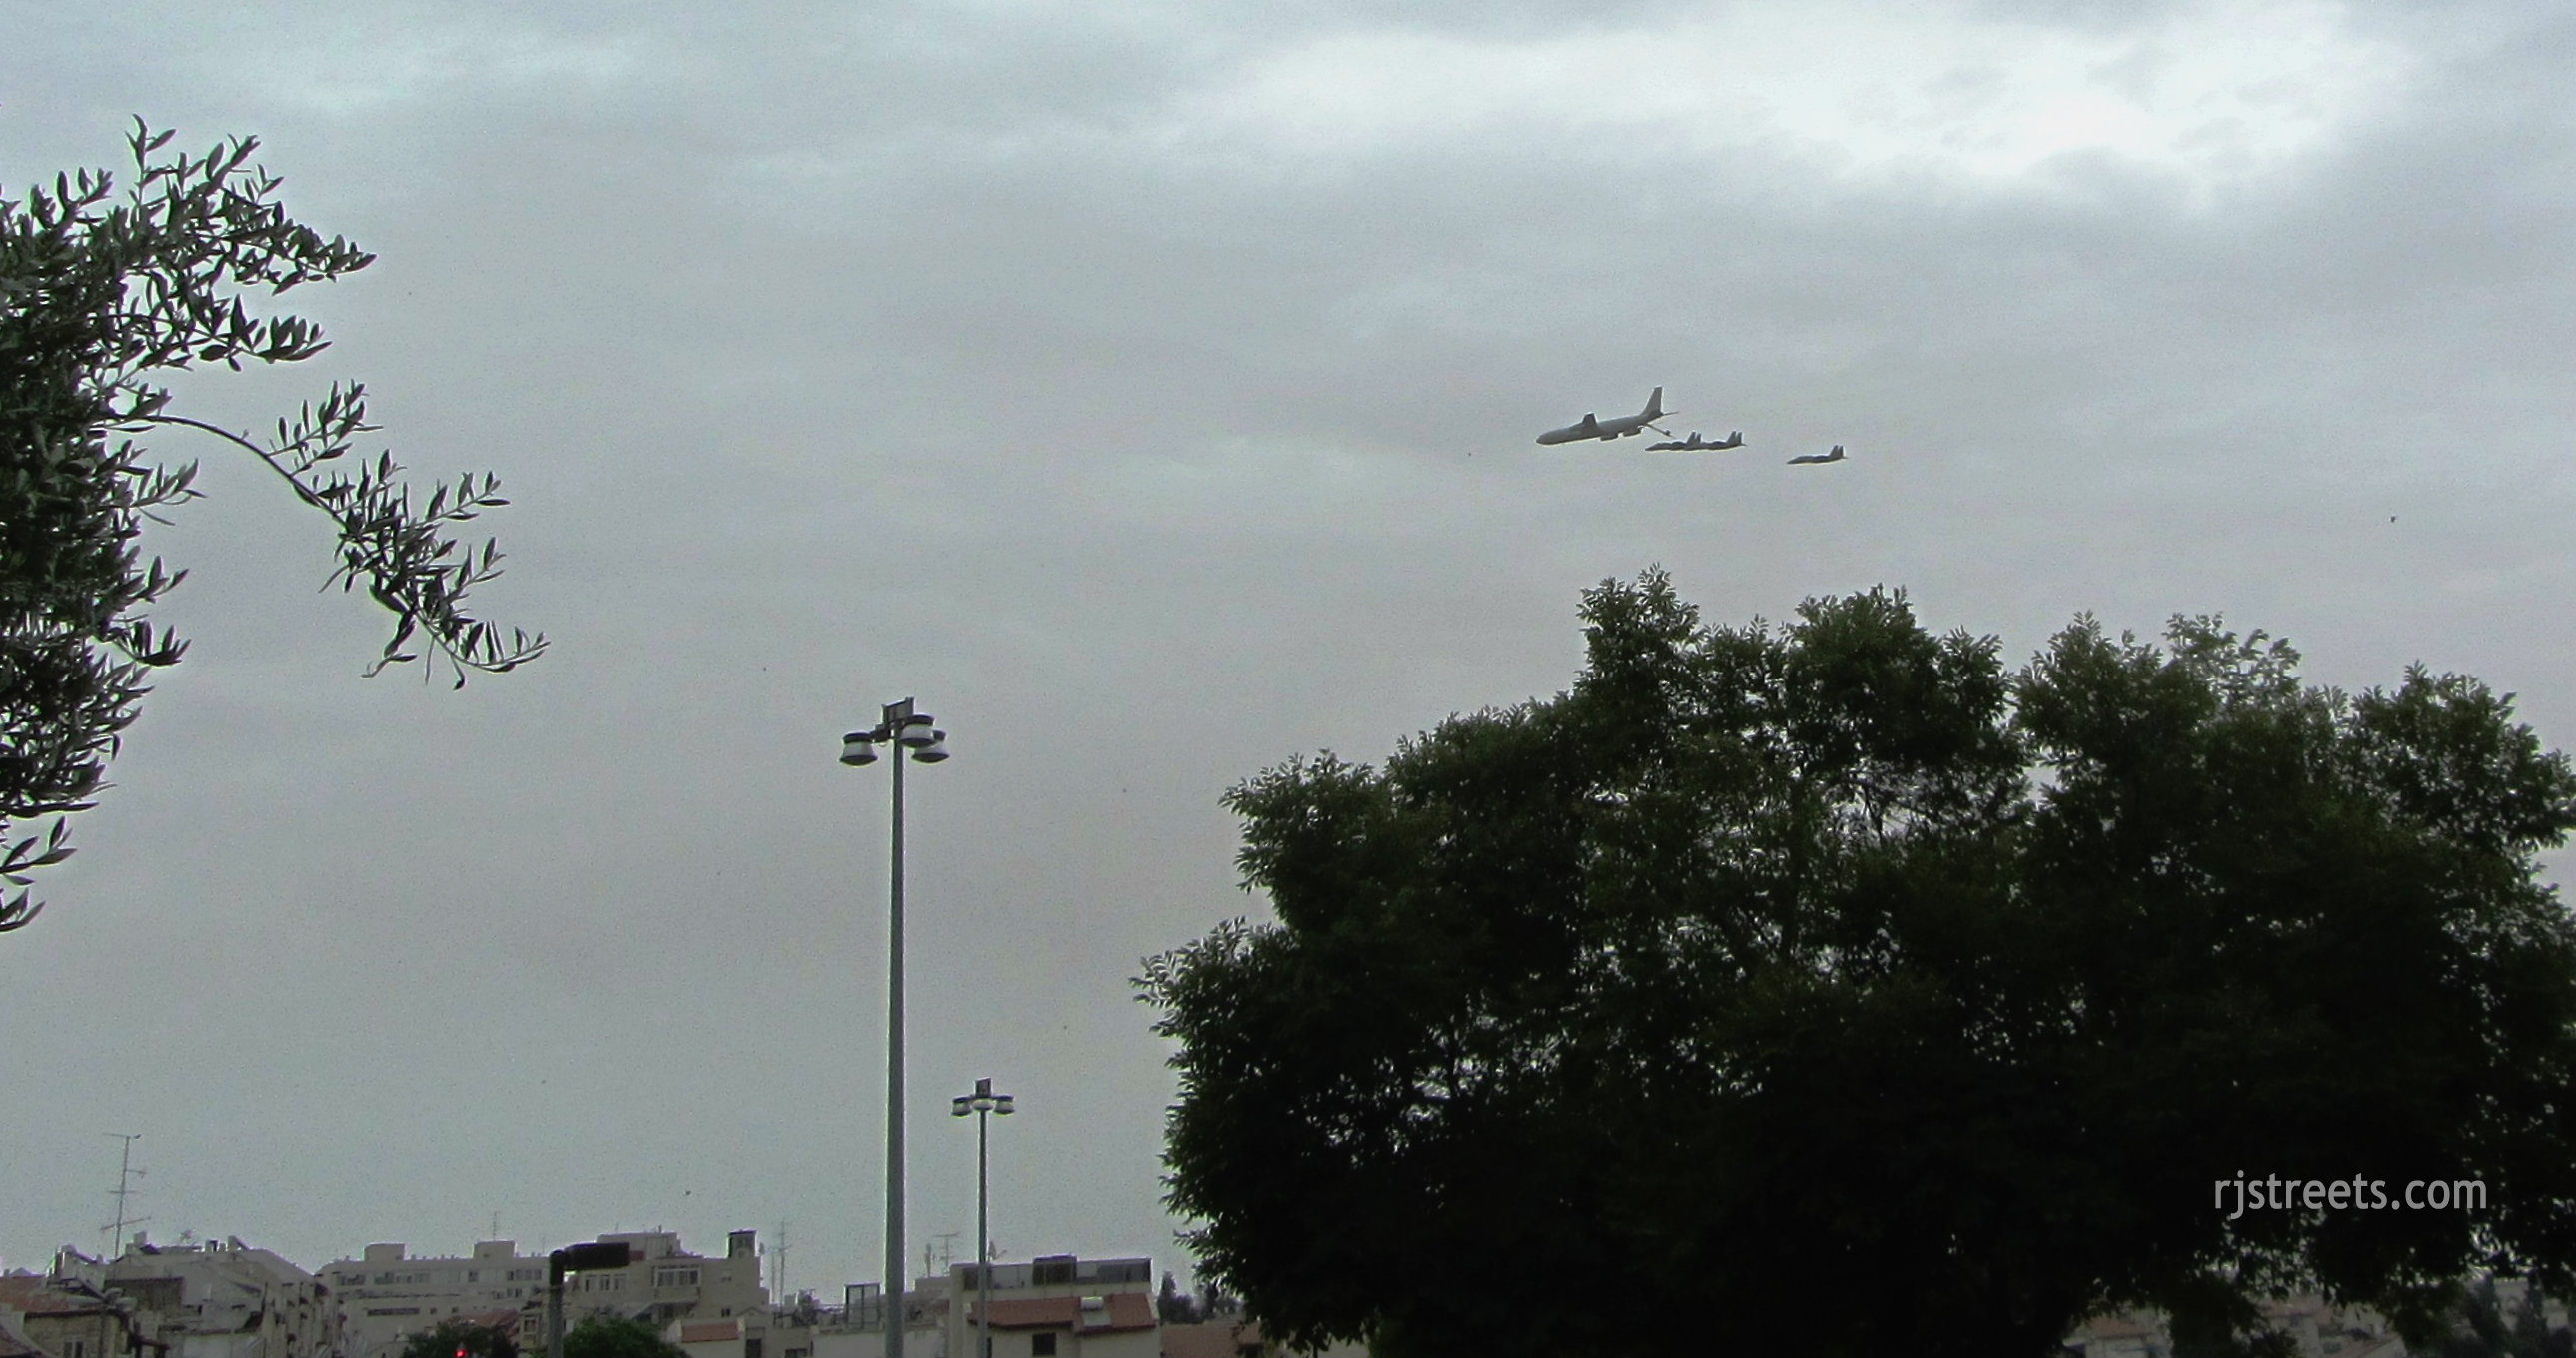 planes flying over Jerusalem, airshow photo, image planes in formation